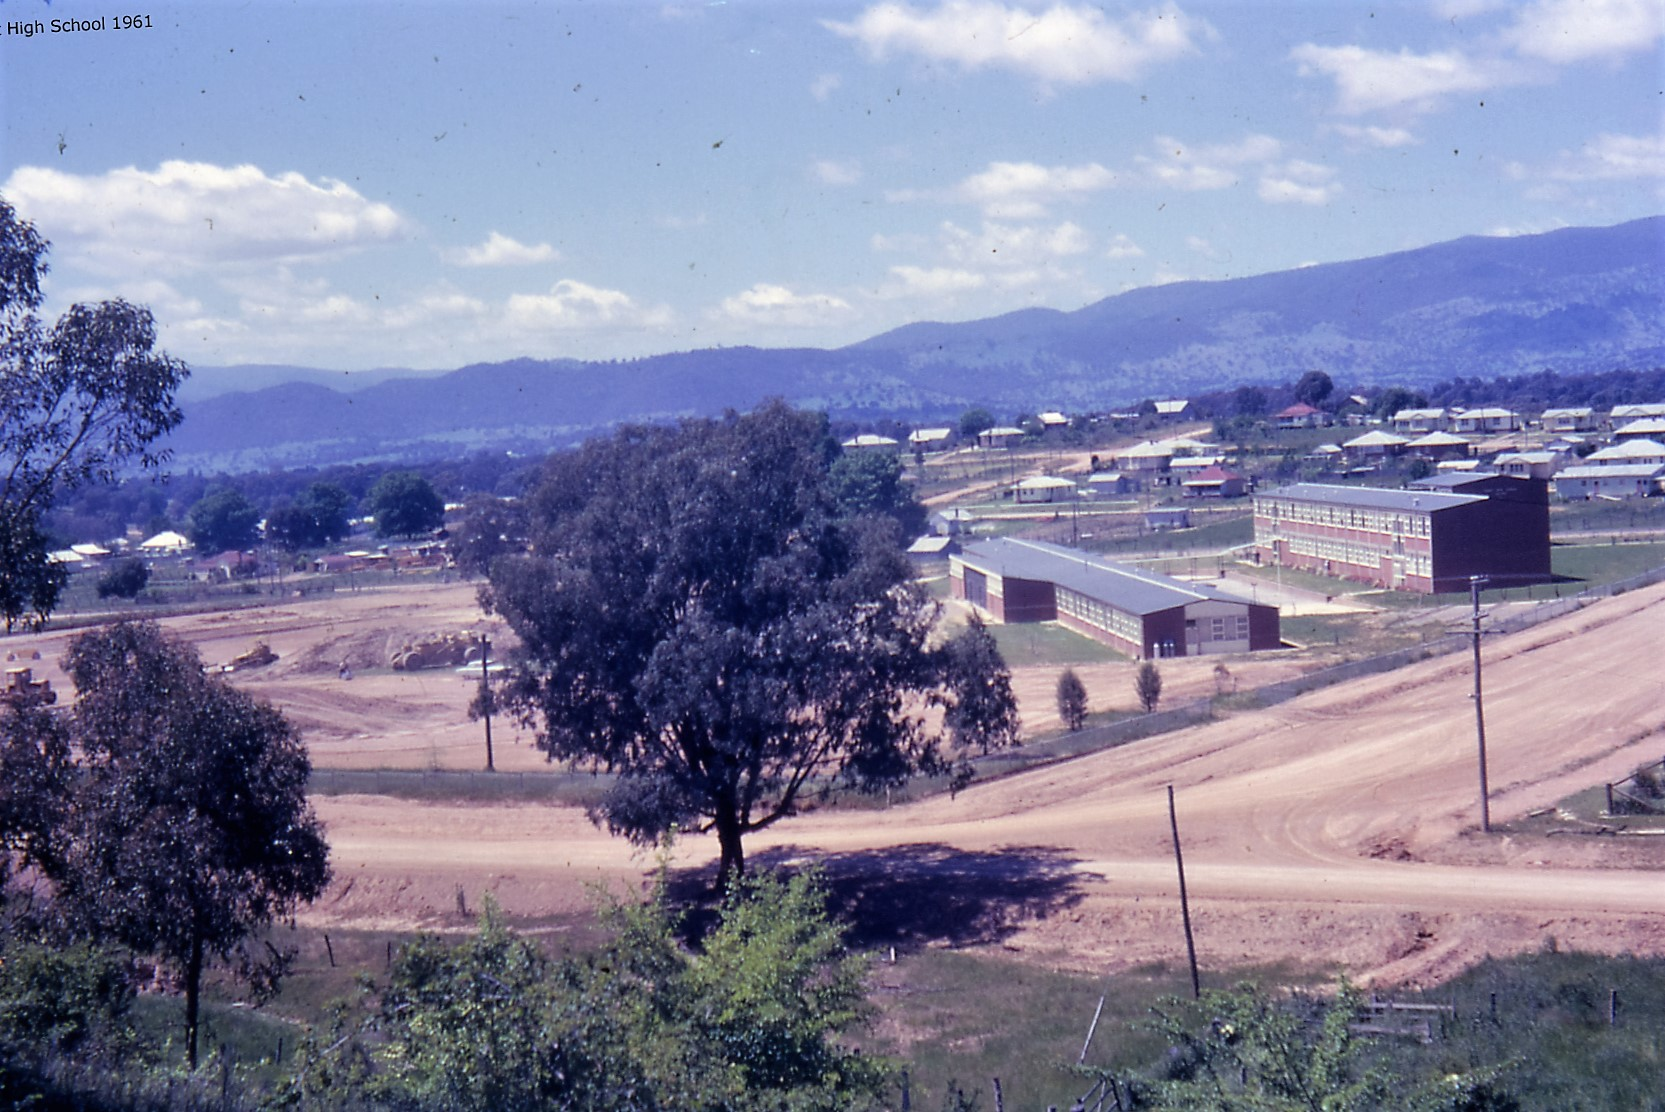 Tumut High School Construction